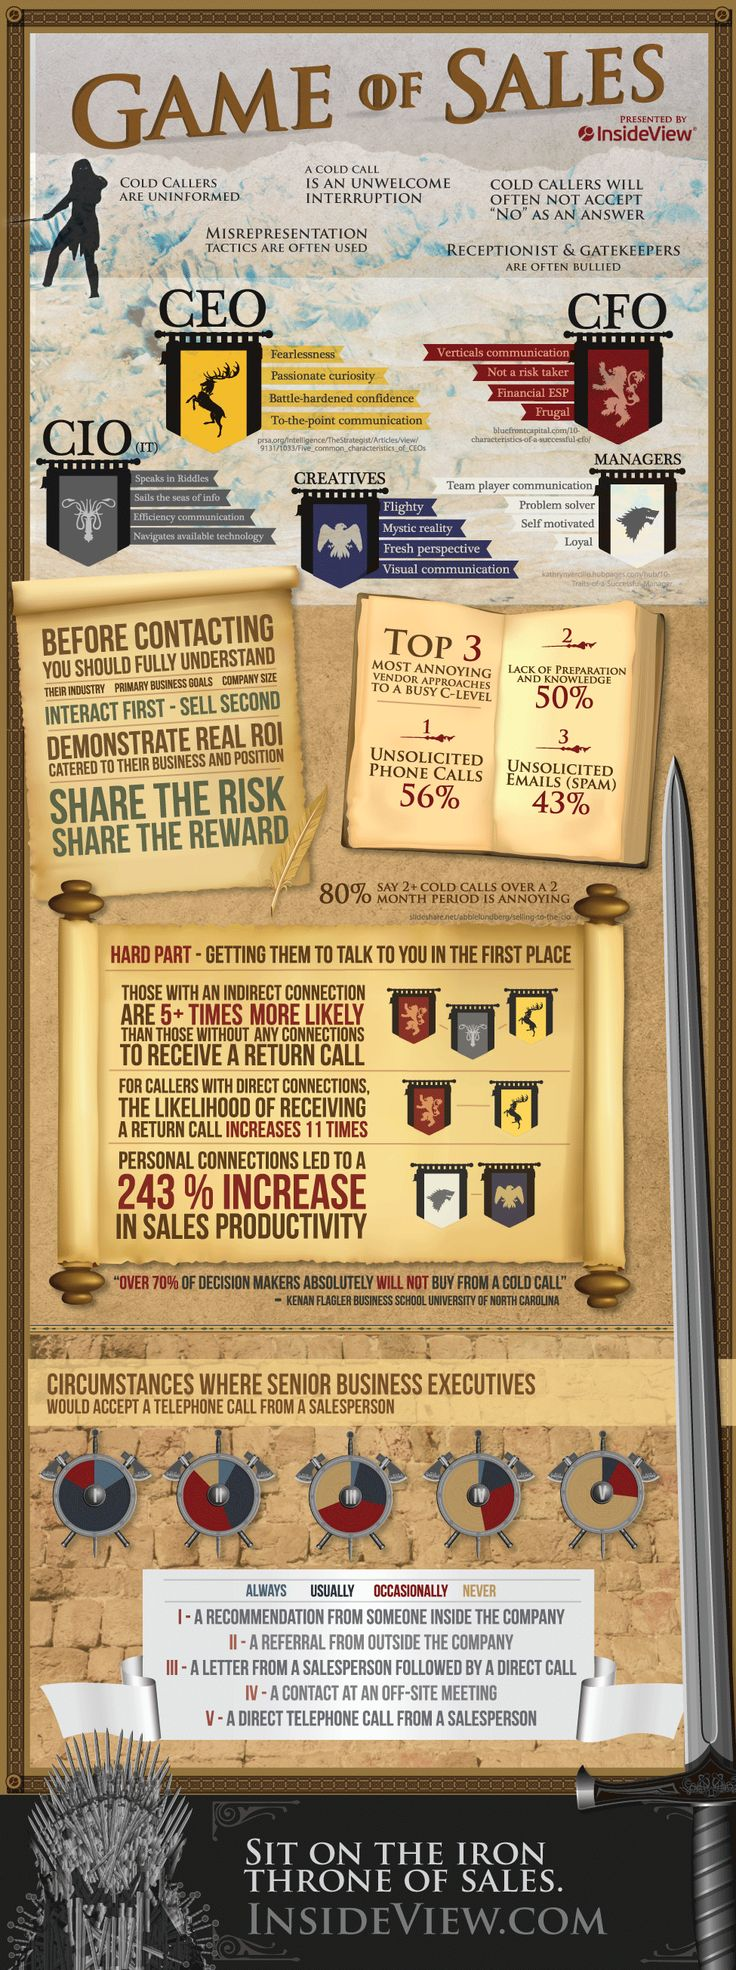 InsideView Infographic - Game of Sales